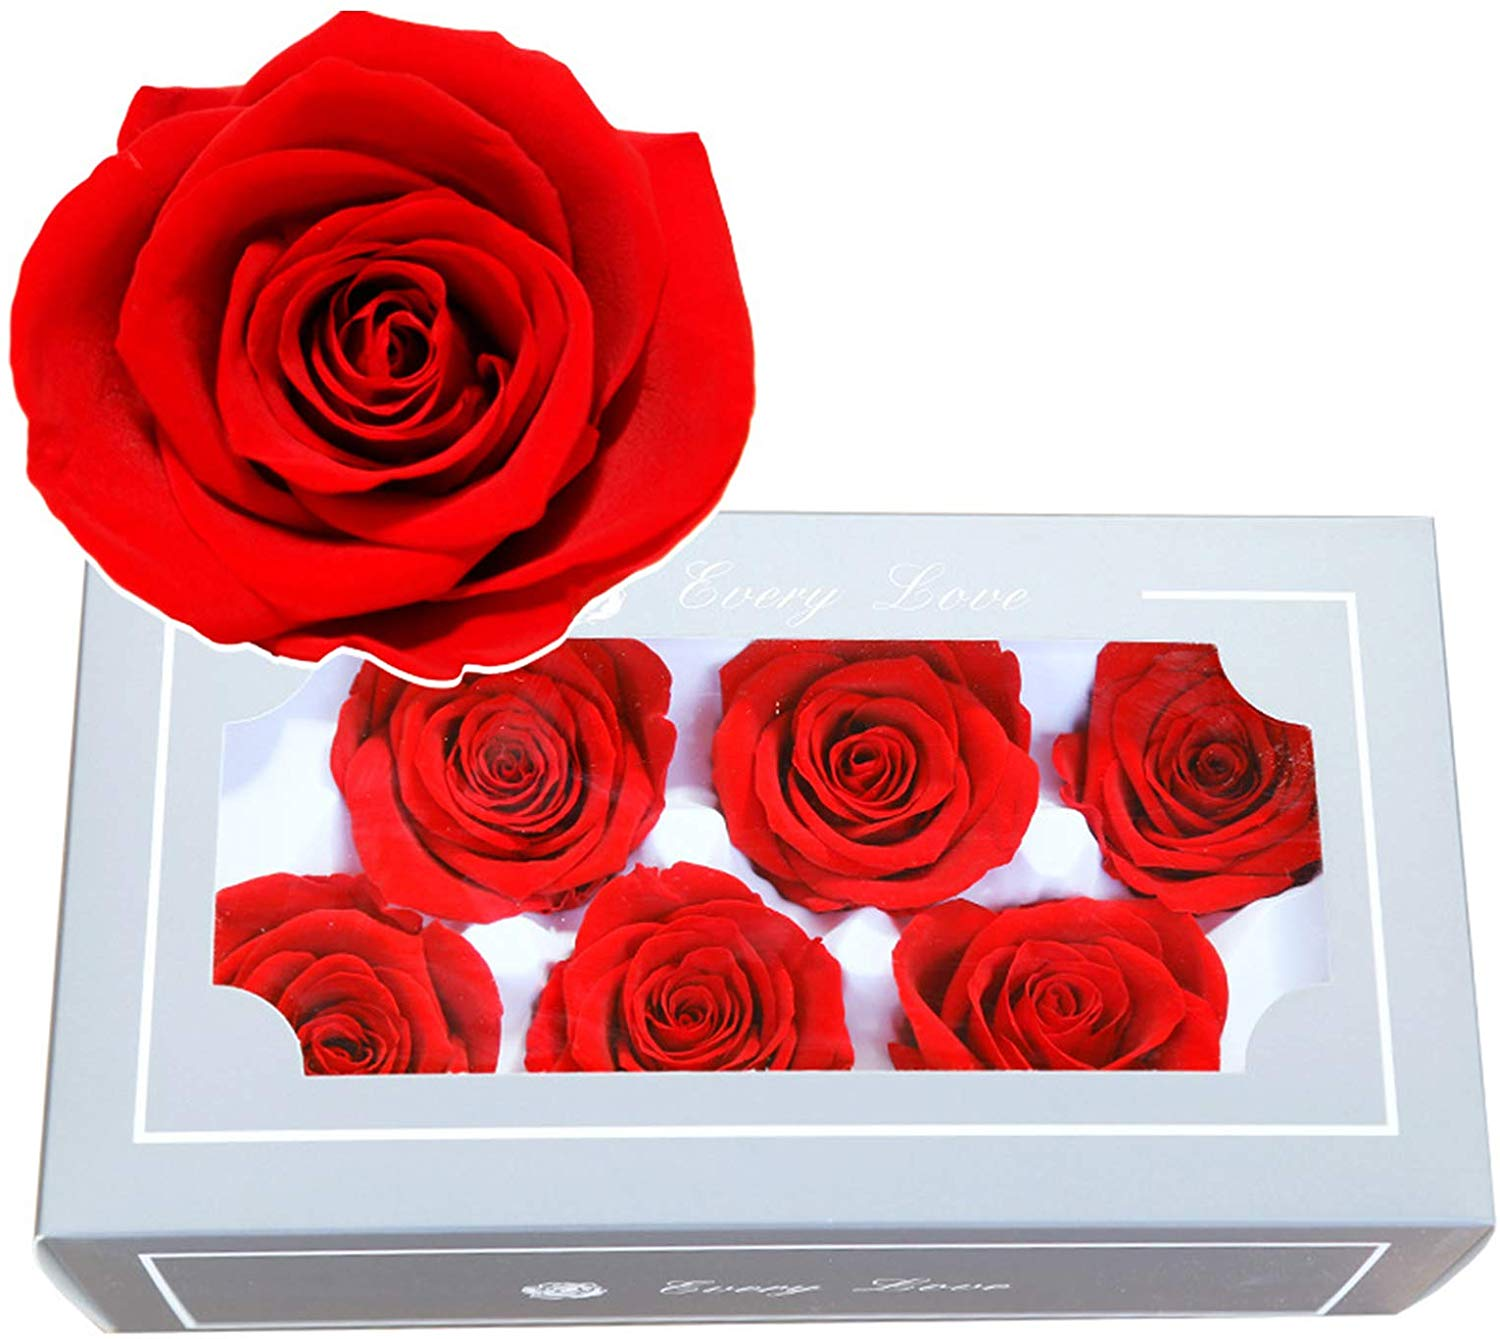 FASFF Preserved Fresh Flower|Eternal Rose Gift kit